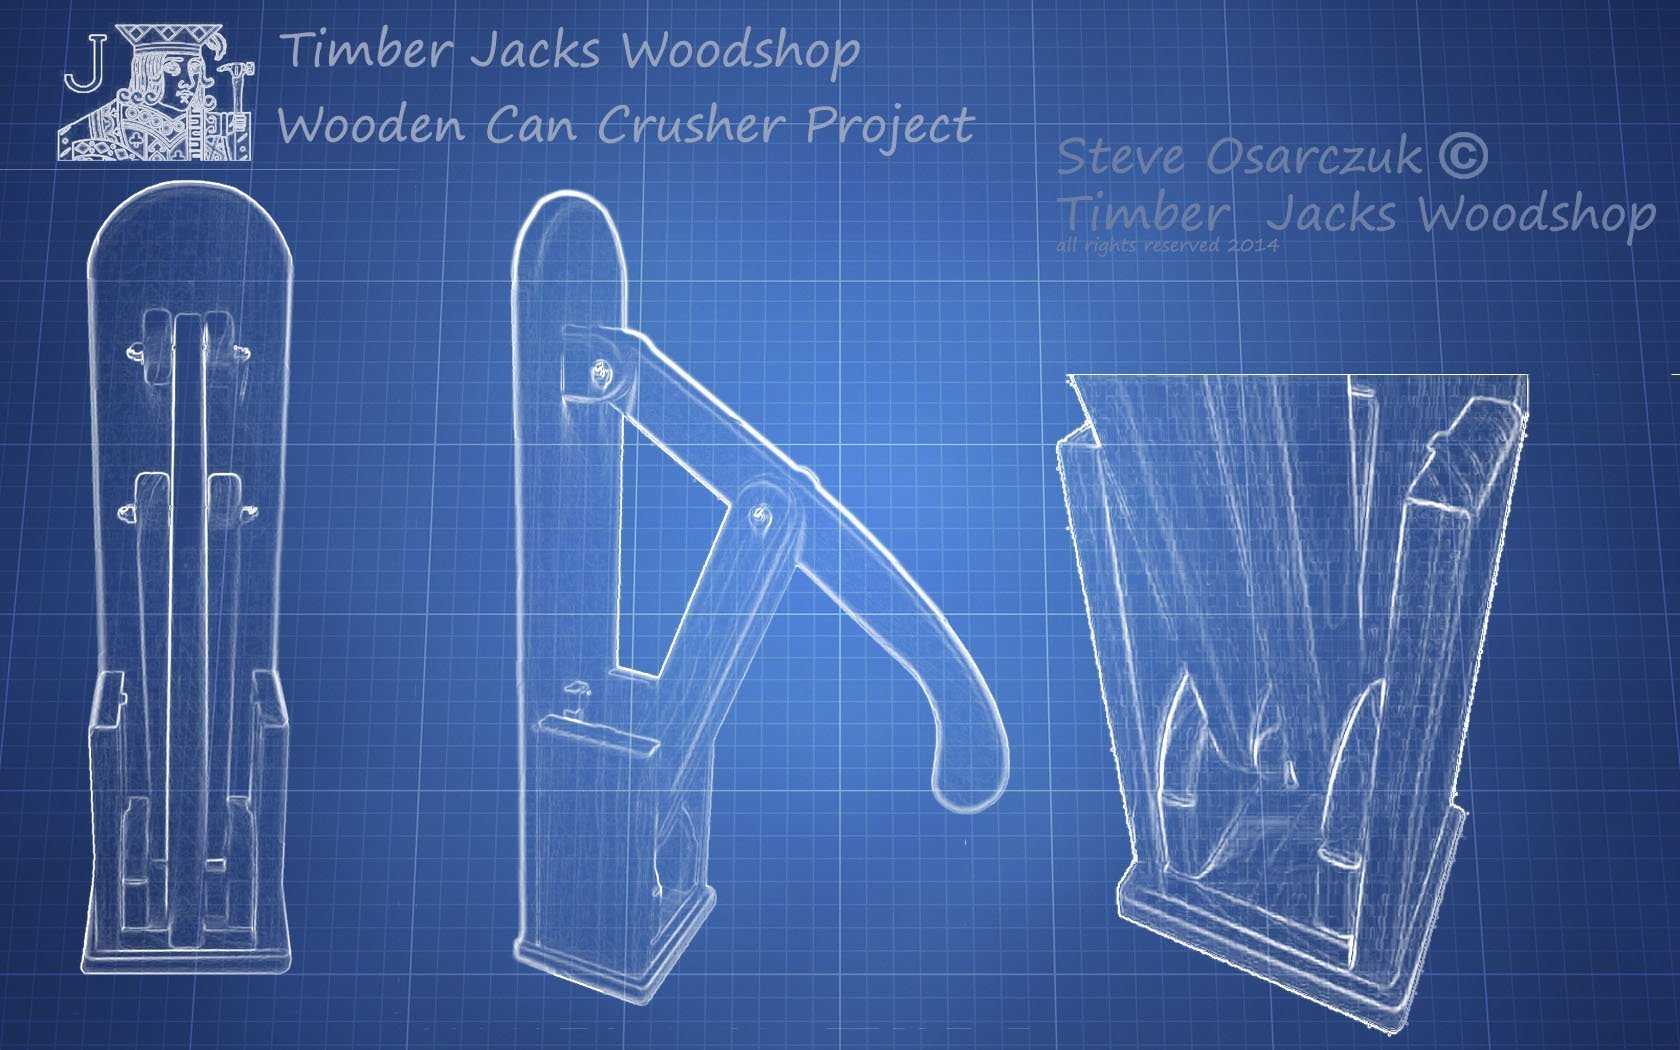 Wooden Can Crusher Project Plans